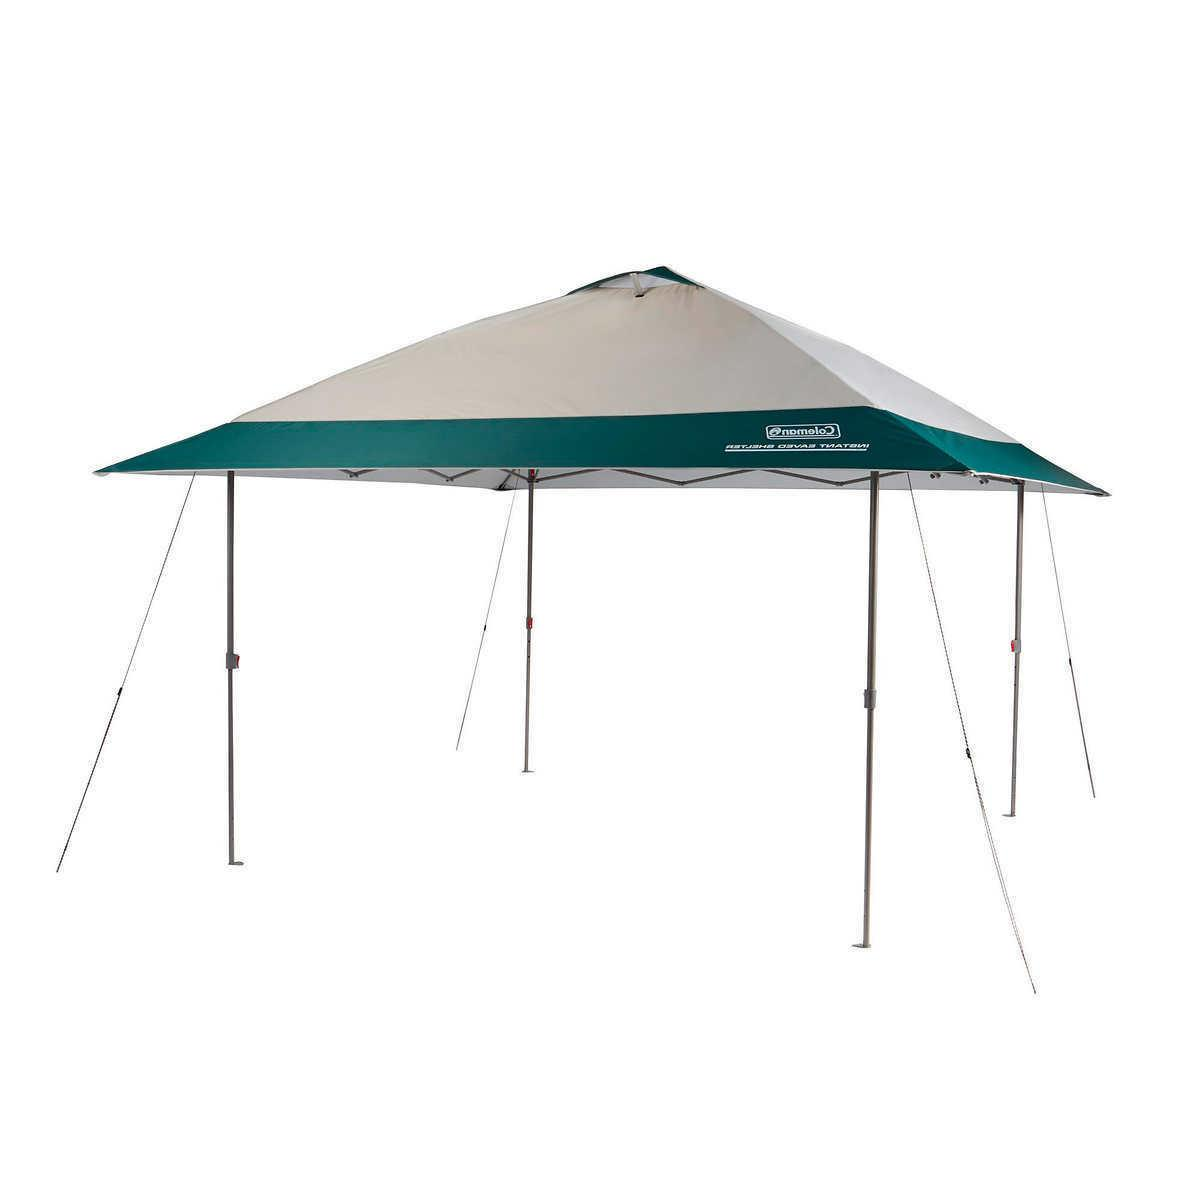 Coleman 13' x 13' Instant Eaved Shelter, 50+ UPF protection